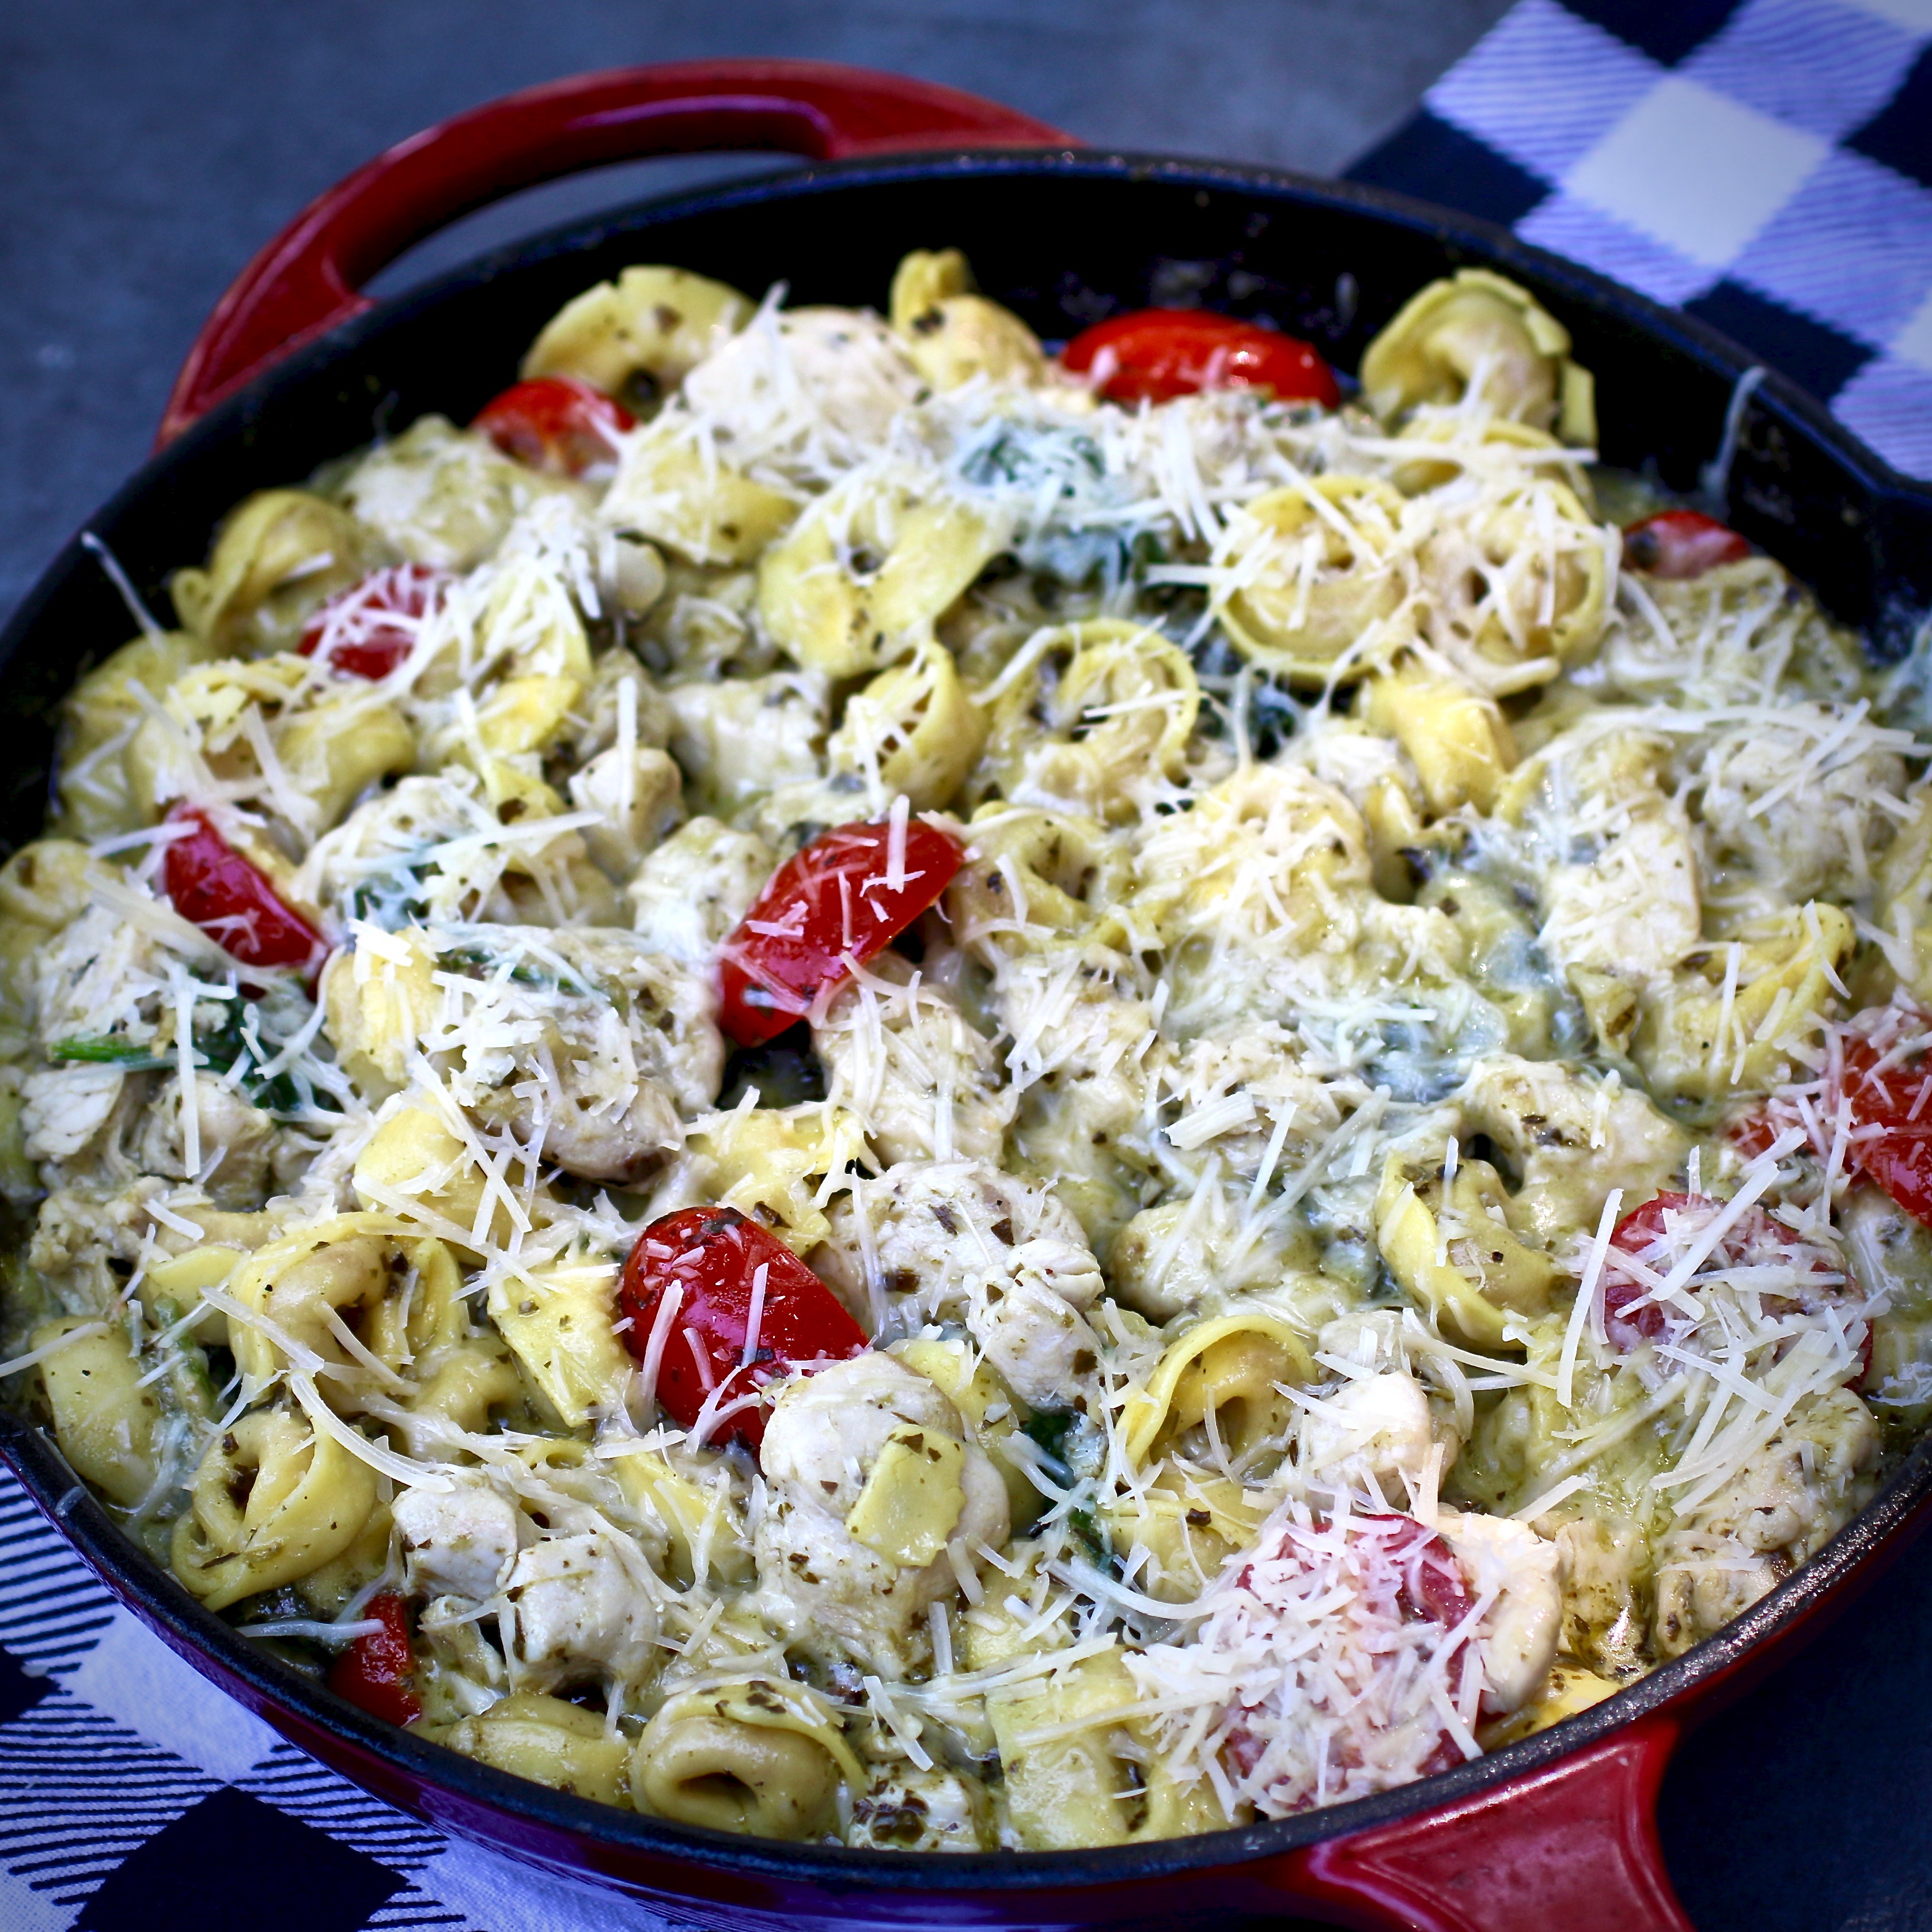 """You'll start by browning cubes of chicken in a skillet with a little olive oil. You'll deglaze the pan with broth, scraping up any browned bits, and then add prepared pesto, a little cream, Parmesan cheese, spinach, tomatoes, and cheese tortellini for the last 5 to 10 minutes. """"A delicious chicken and tortellini pesto dinner that needs only one pan to create,"""" says My Hot Southern Mess."""